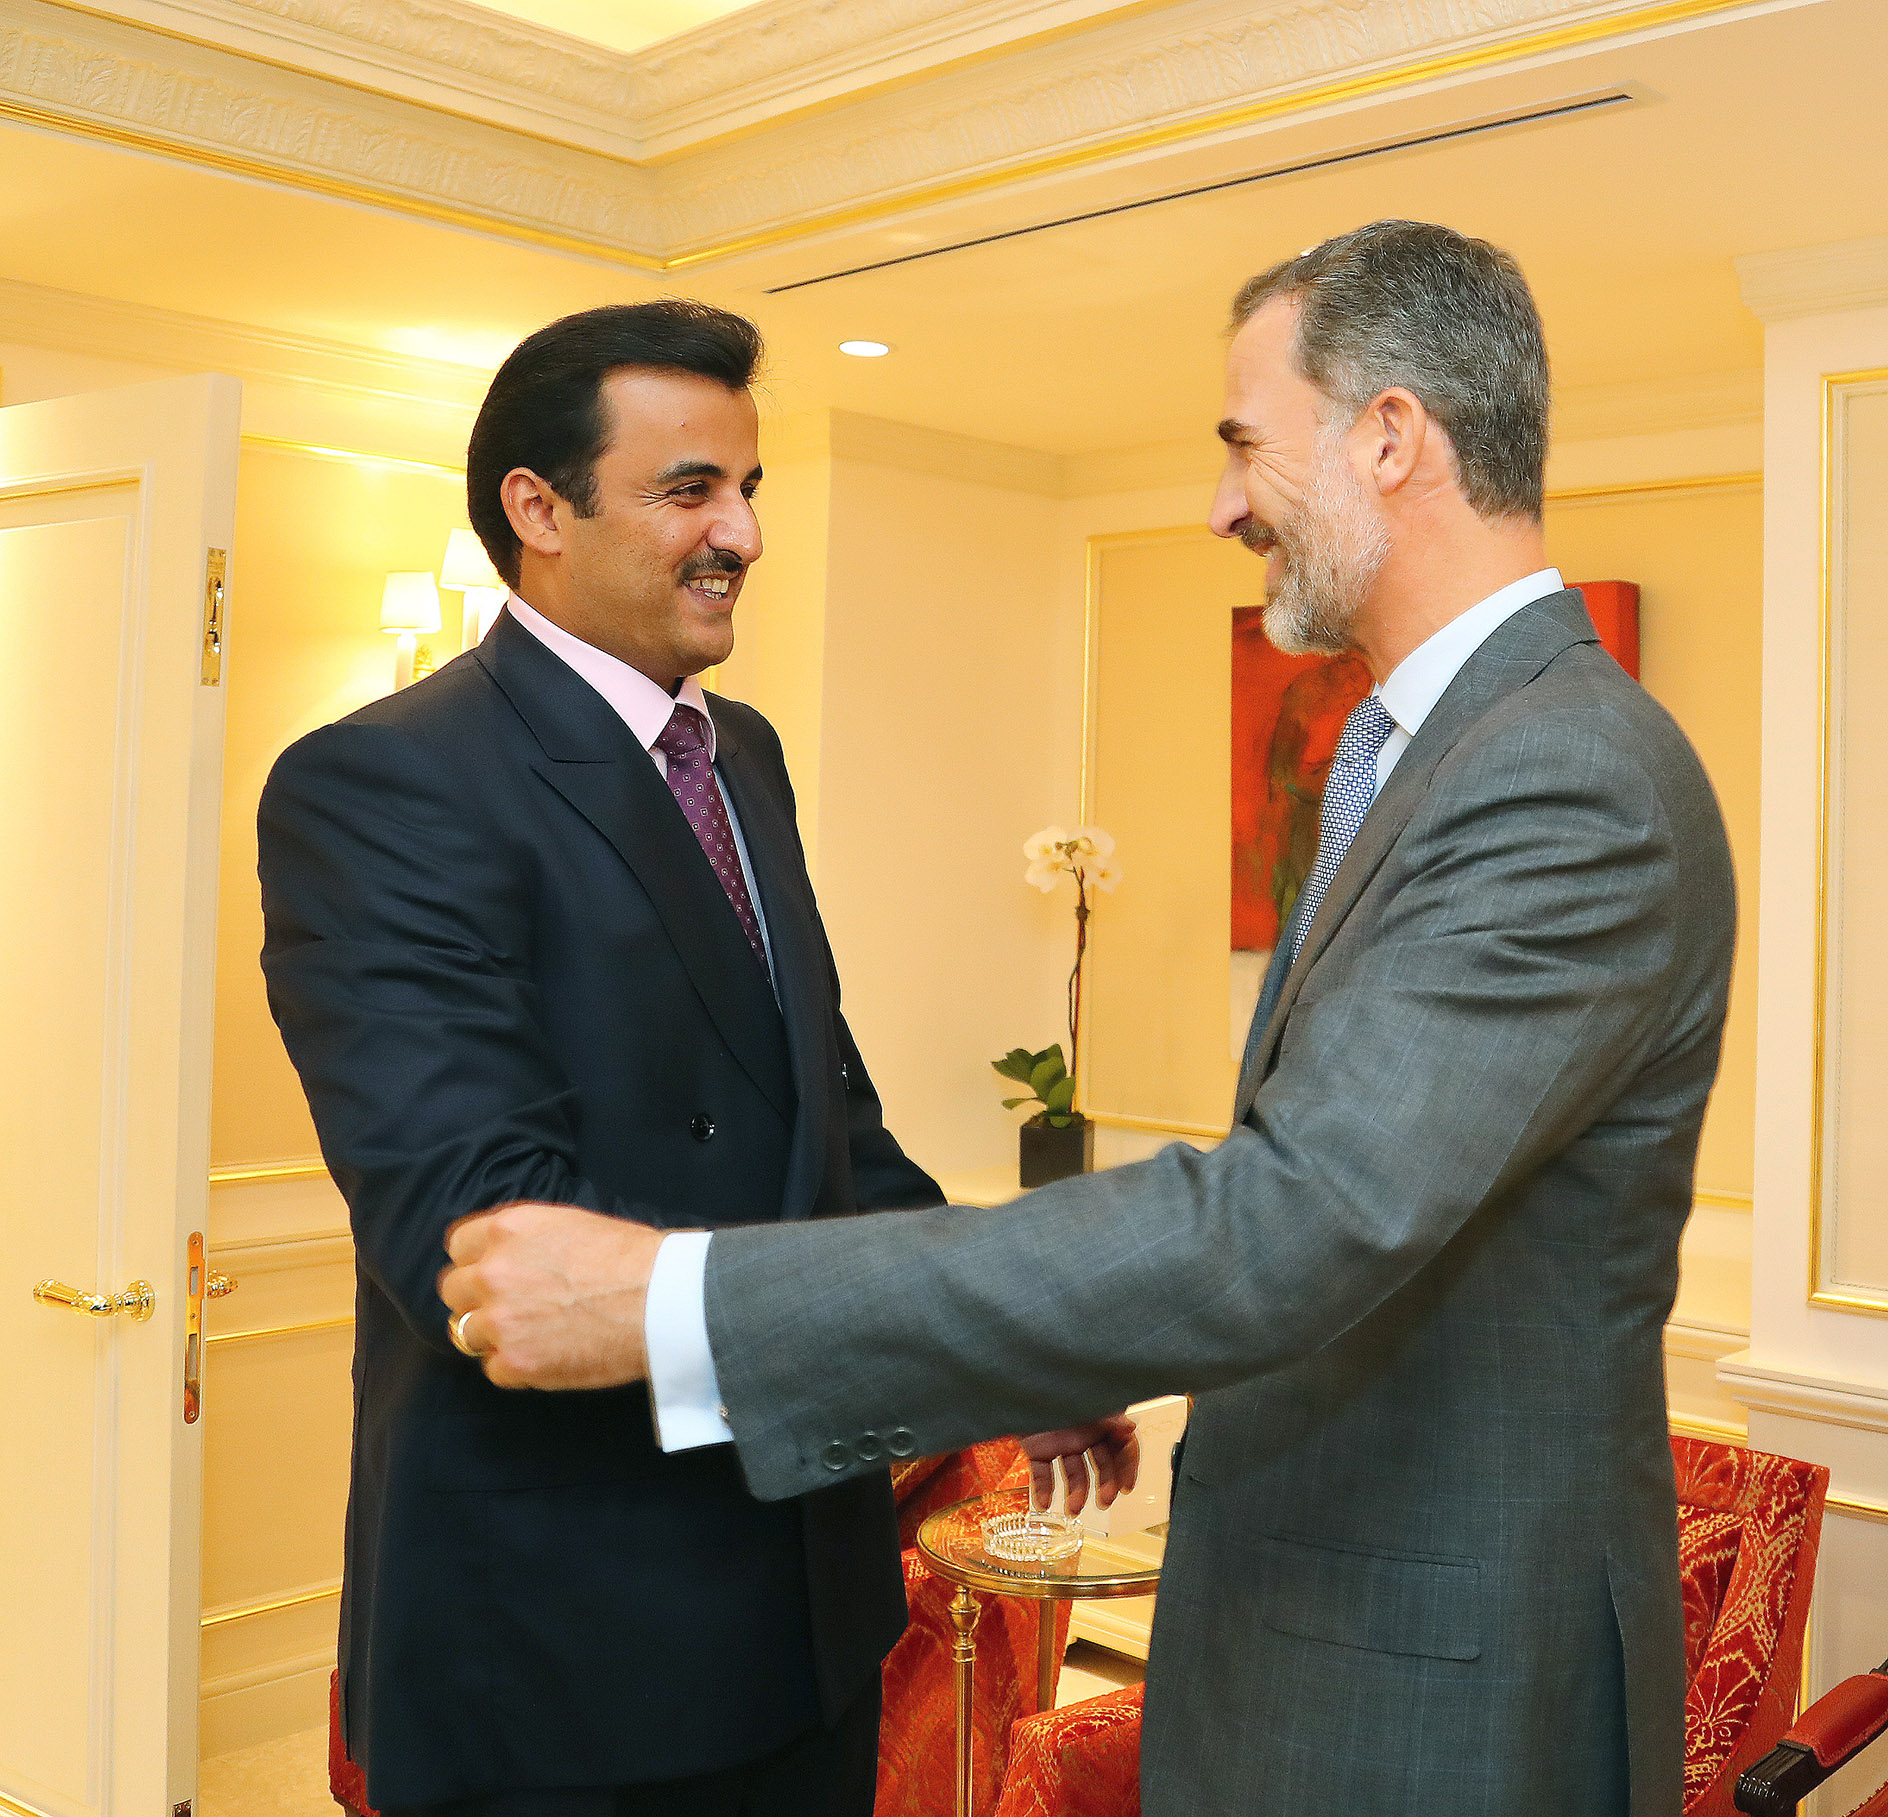 Hh The Amir Receives King Of Spain